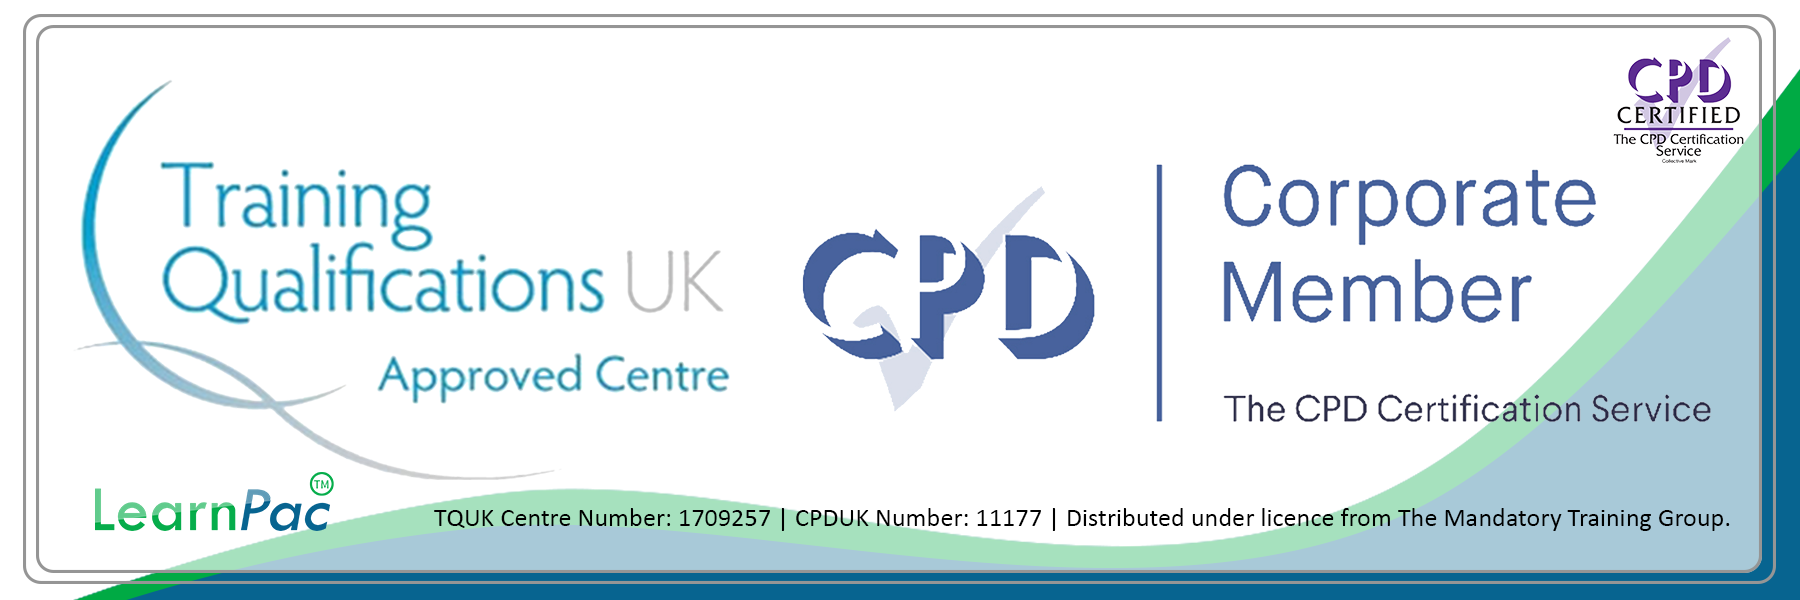 TQUK Banner - CPDUK Accredited - Learnpac System UK -